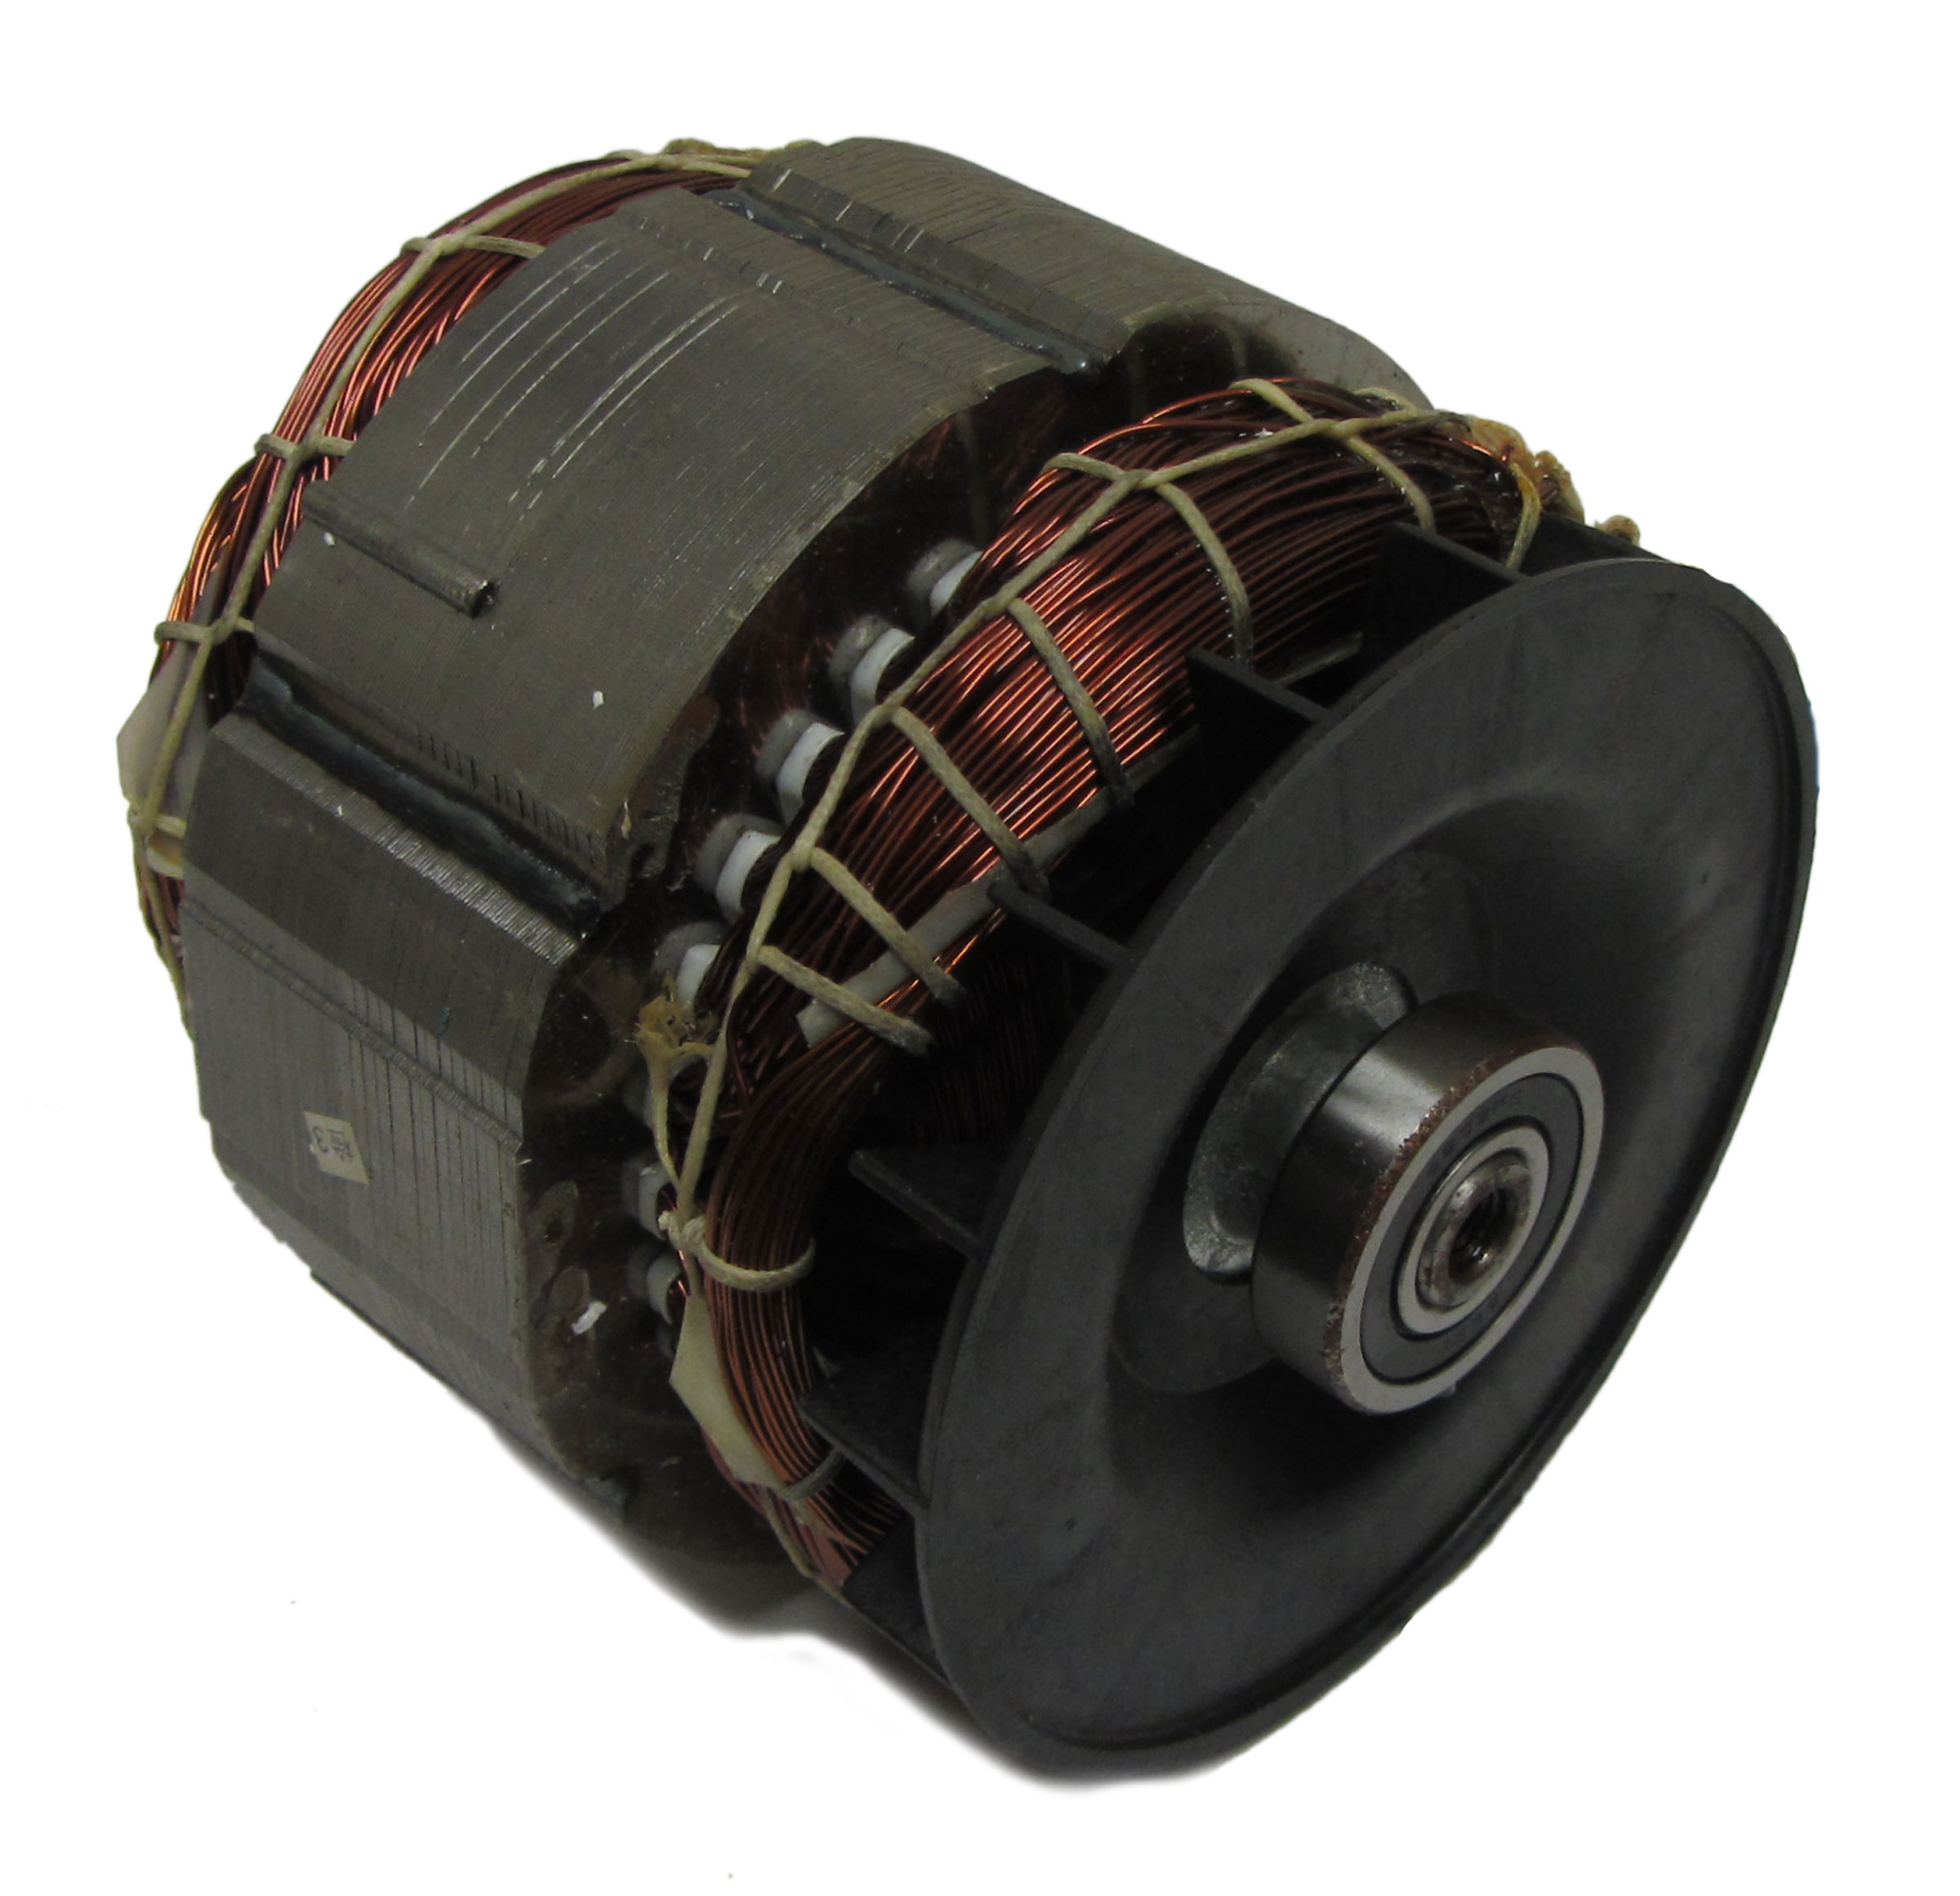 Stator & Rotor Assembly for 1250w Generator | JD125011 | BMI Karts ...